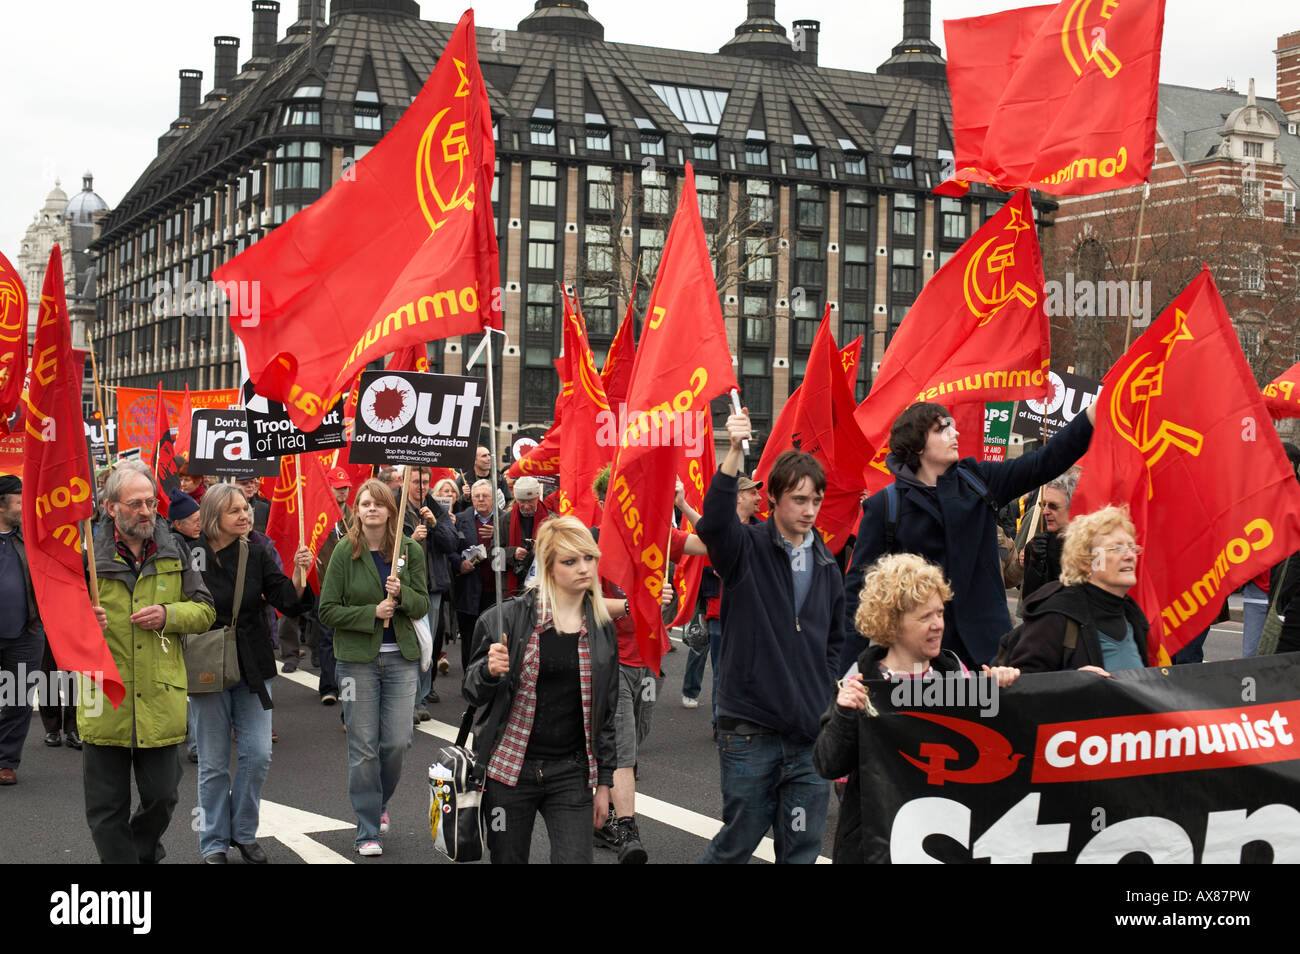 communist flags waving at an anti war rally in london uk